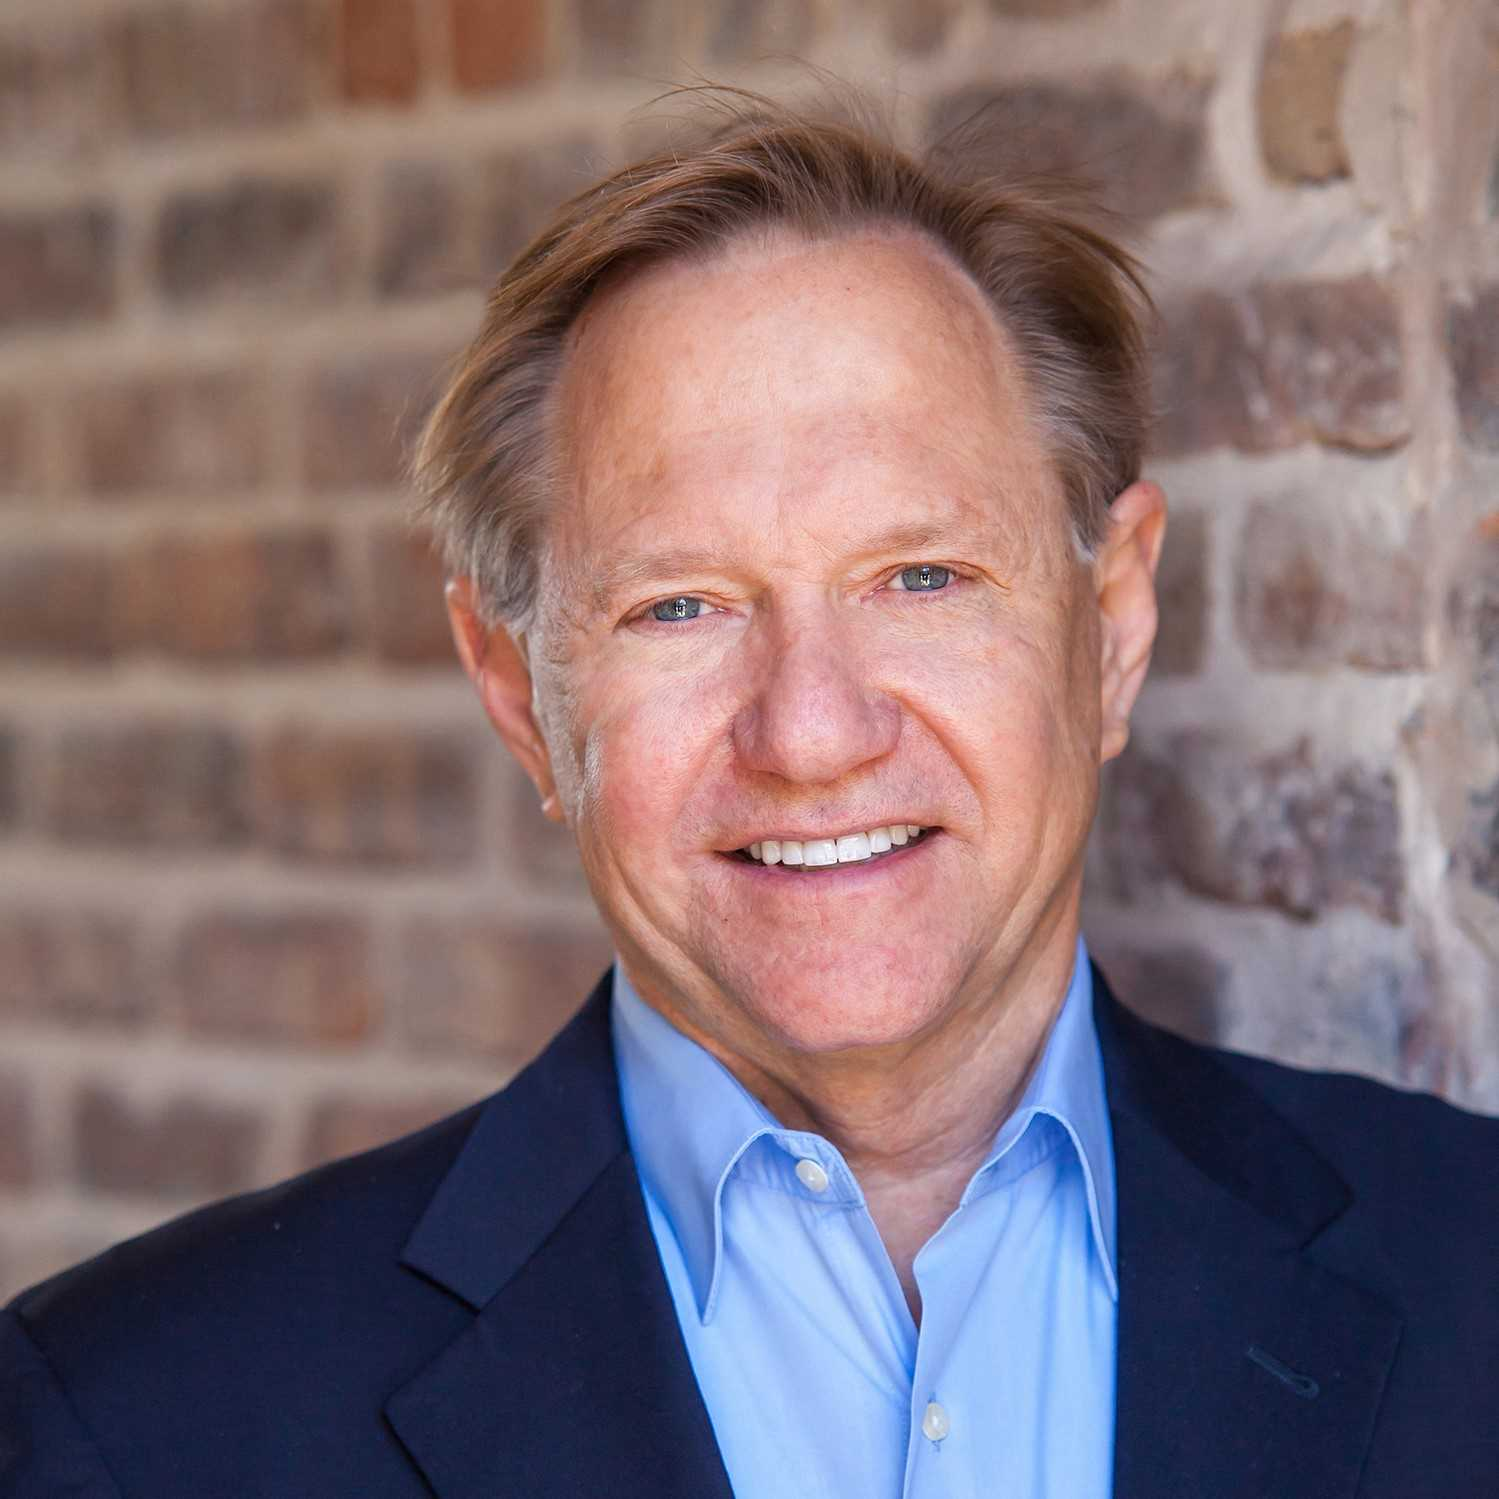 Quint Studer, speaker, author and entreprenuer